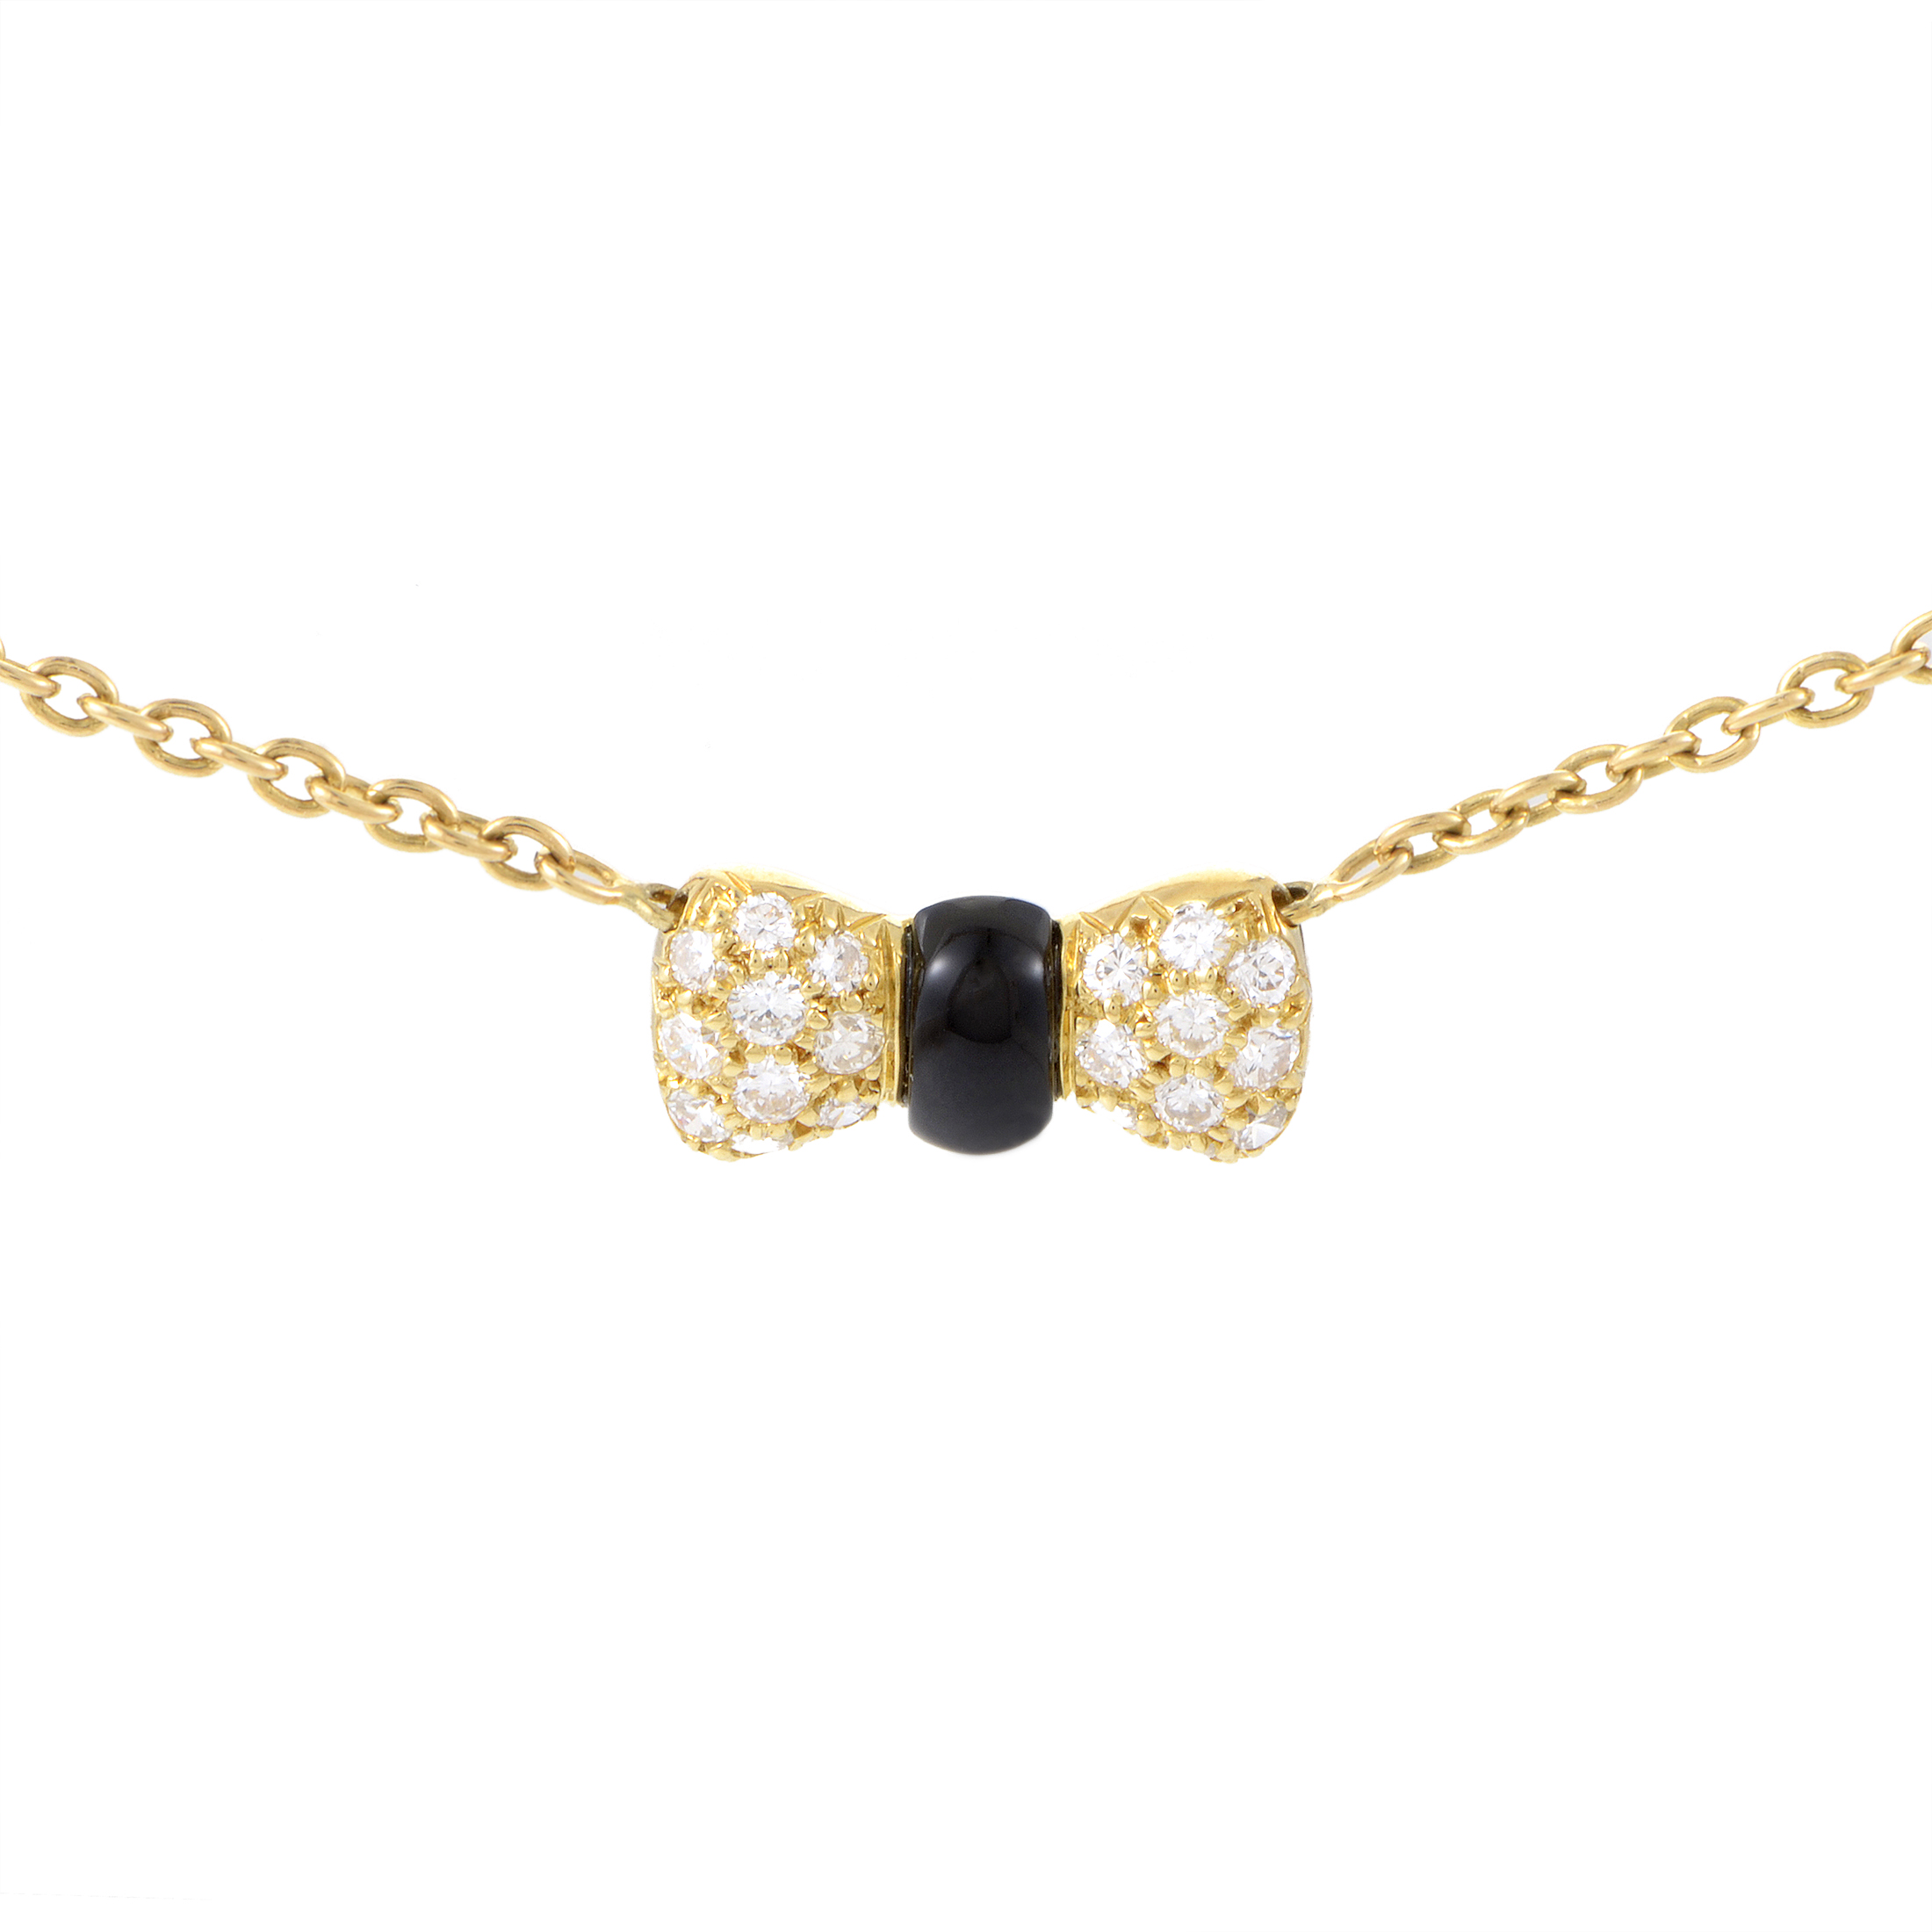 Van Cleef & Arpels Women's 18K Yellow Gold Diamond & Onyx Bow Pendant Necklace